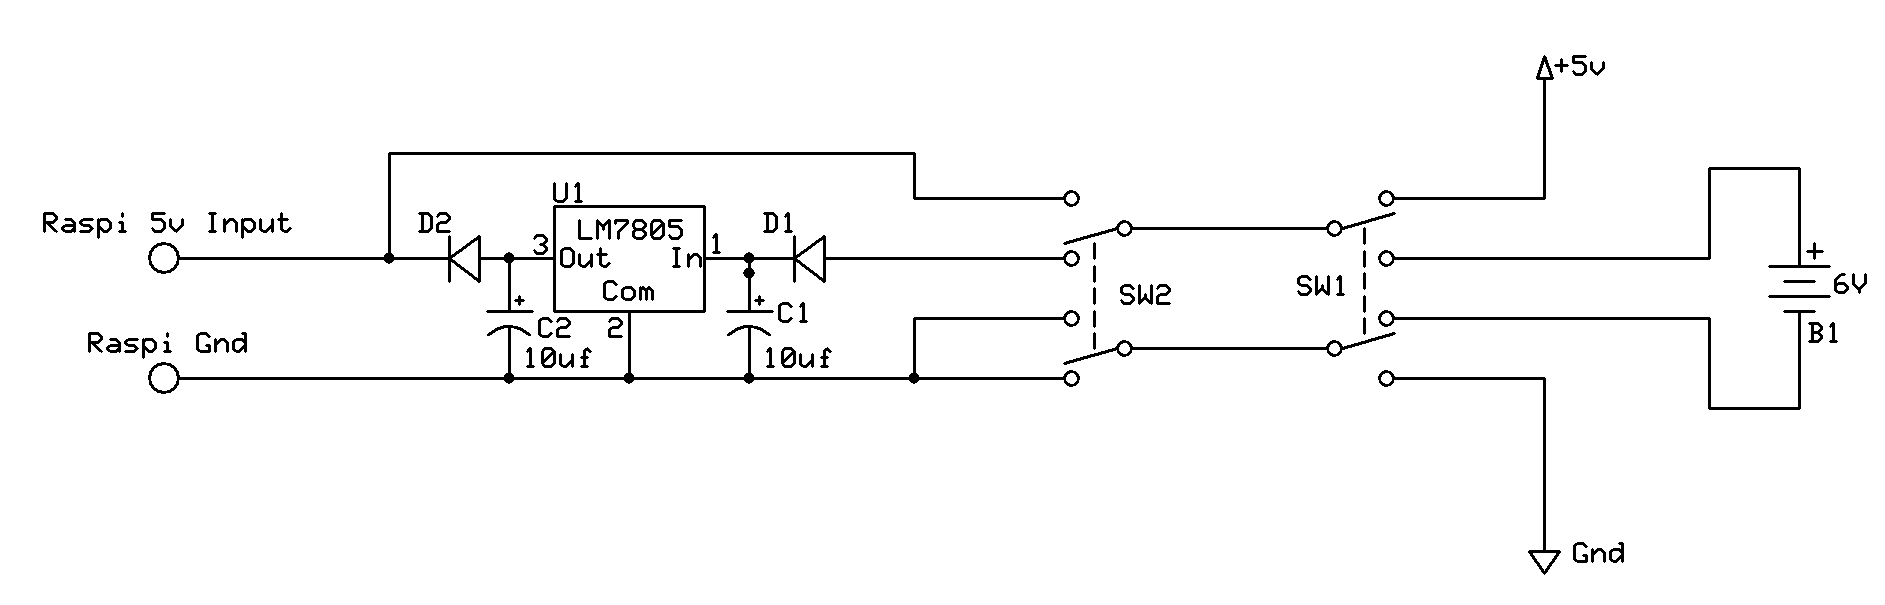 hight resolution of example for what s supposed to be done power supply batteries switches